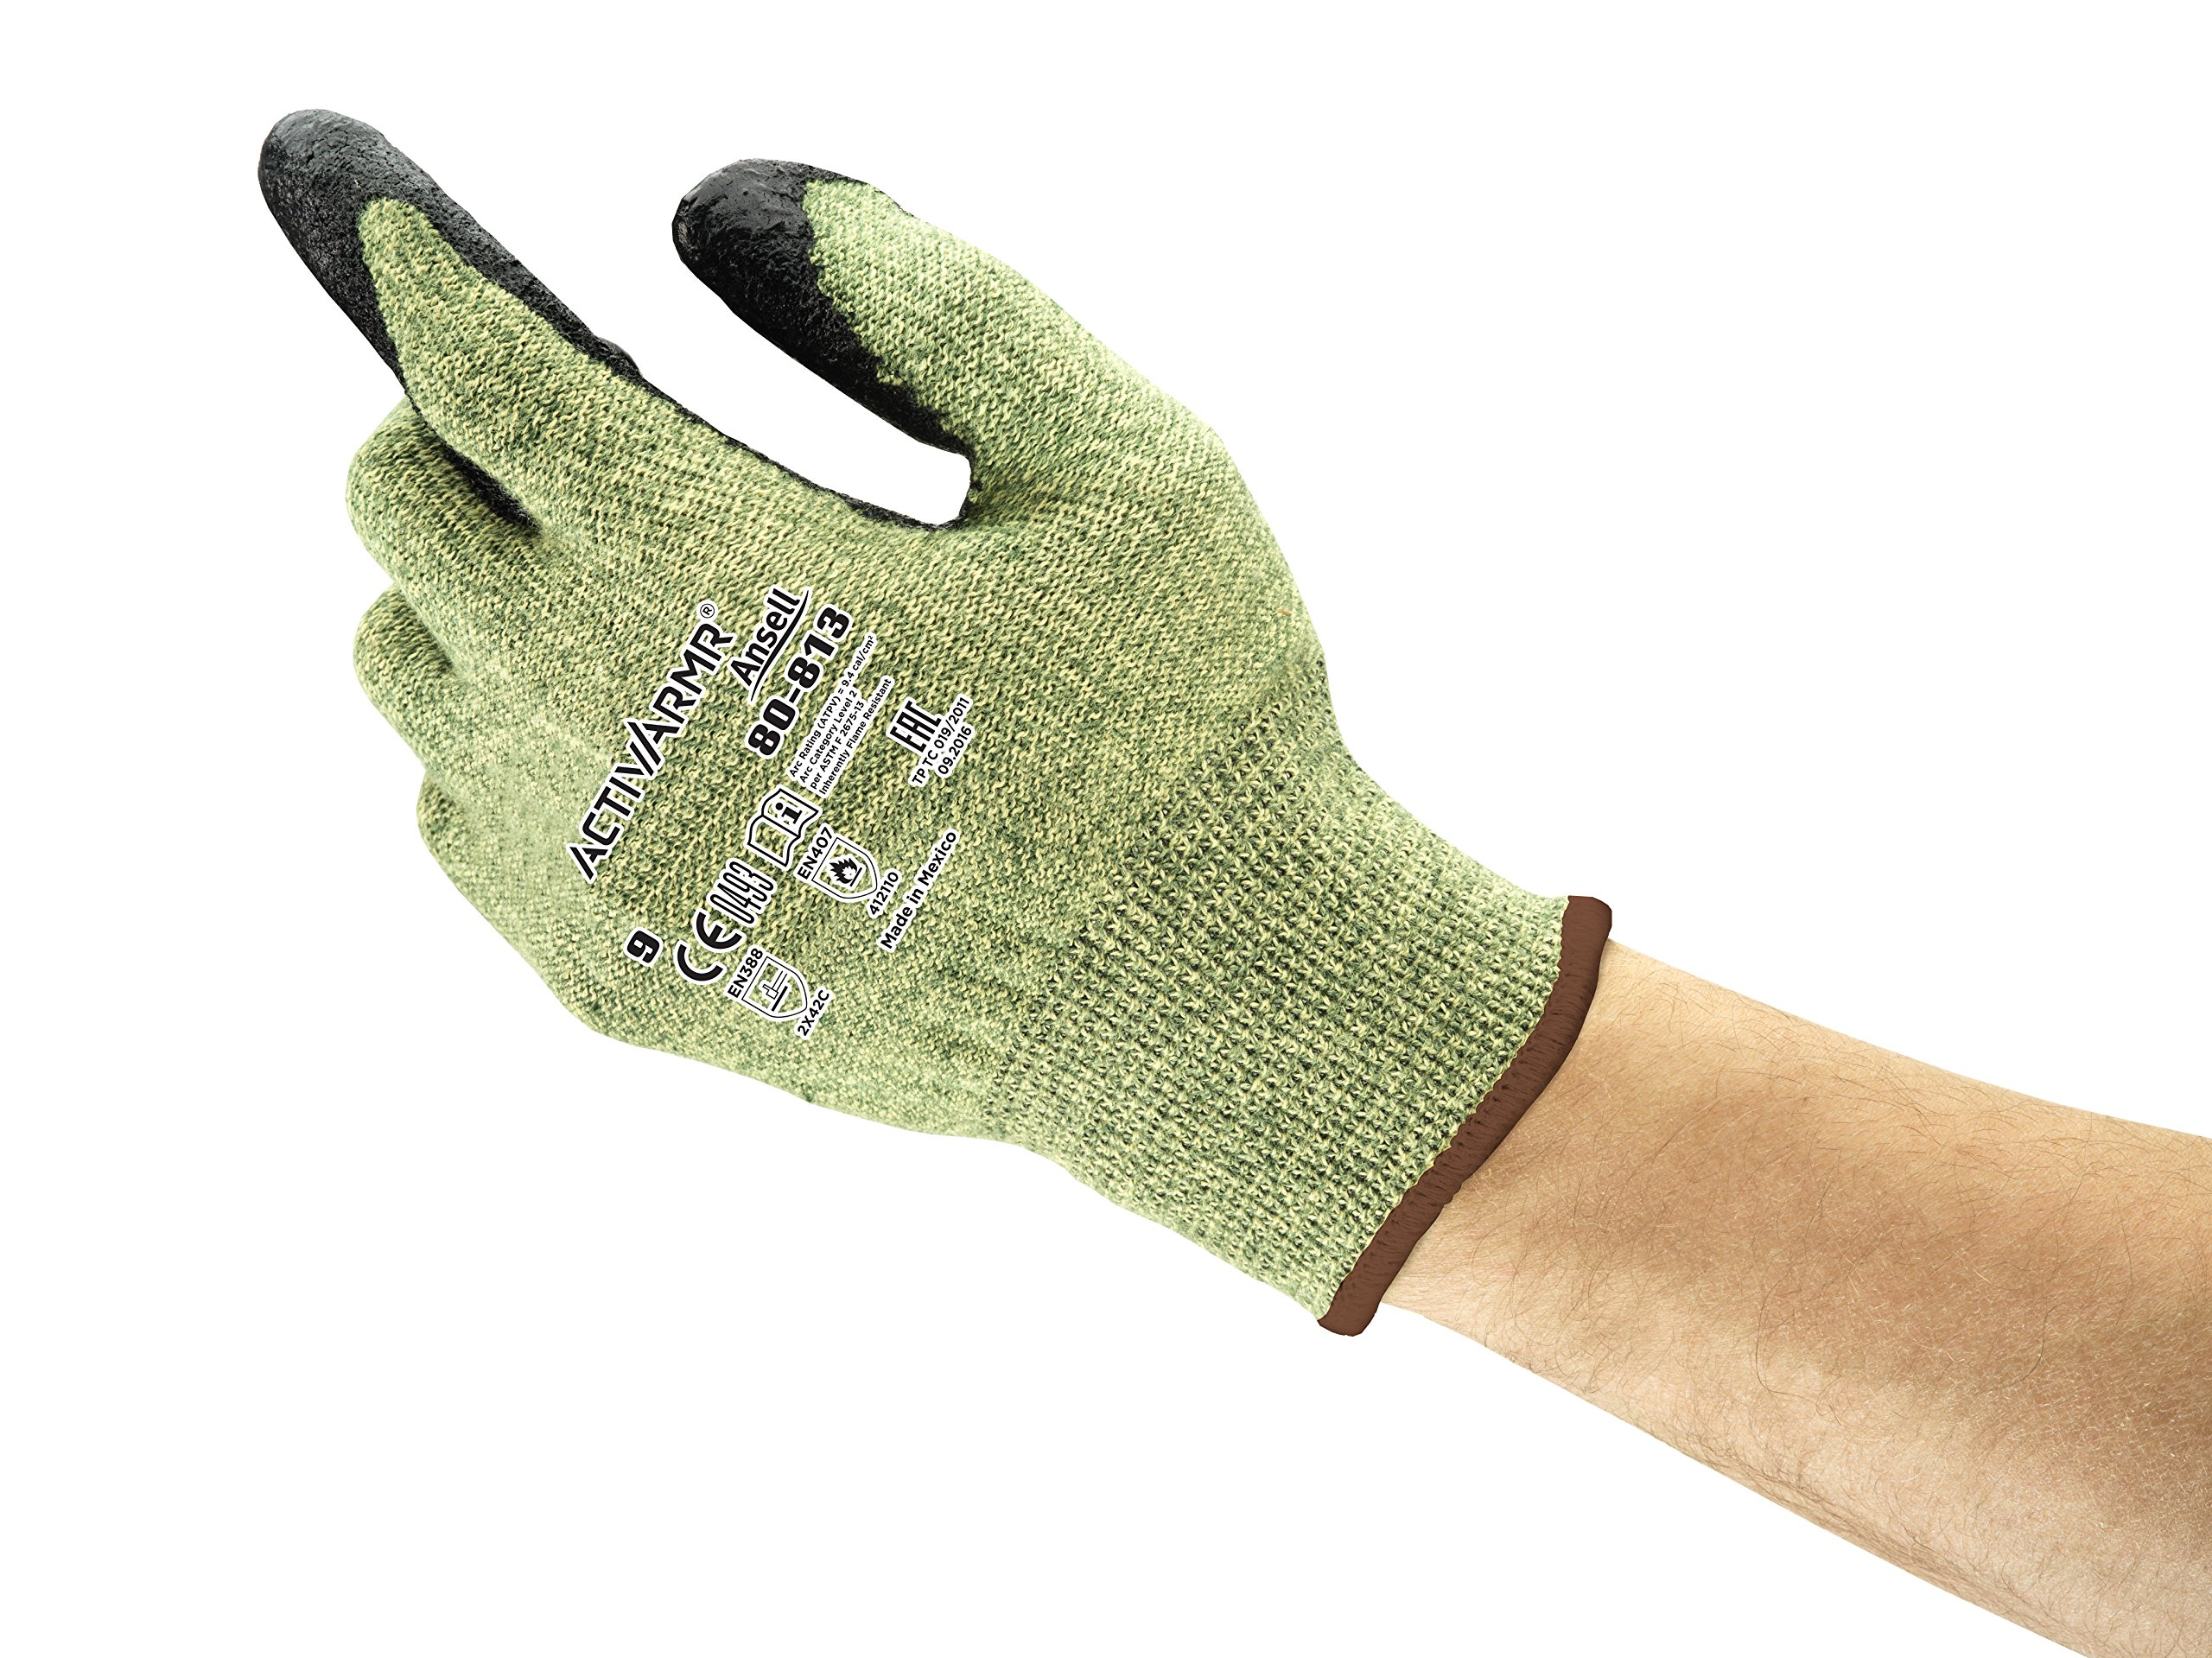 Ansell PowerFlex 80-813 DuPont Kevlar Special Purpose Glove with Knitwrist, Flame/Cut Resistance, Size 9 (Pack of 12 Pair)